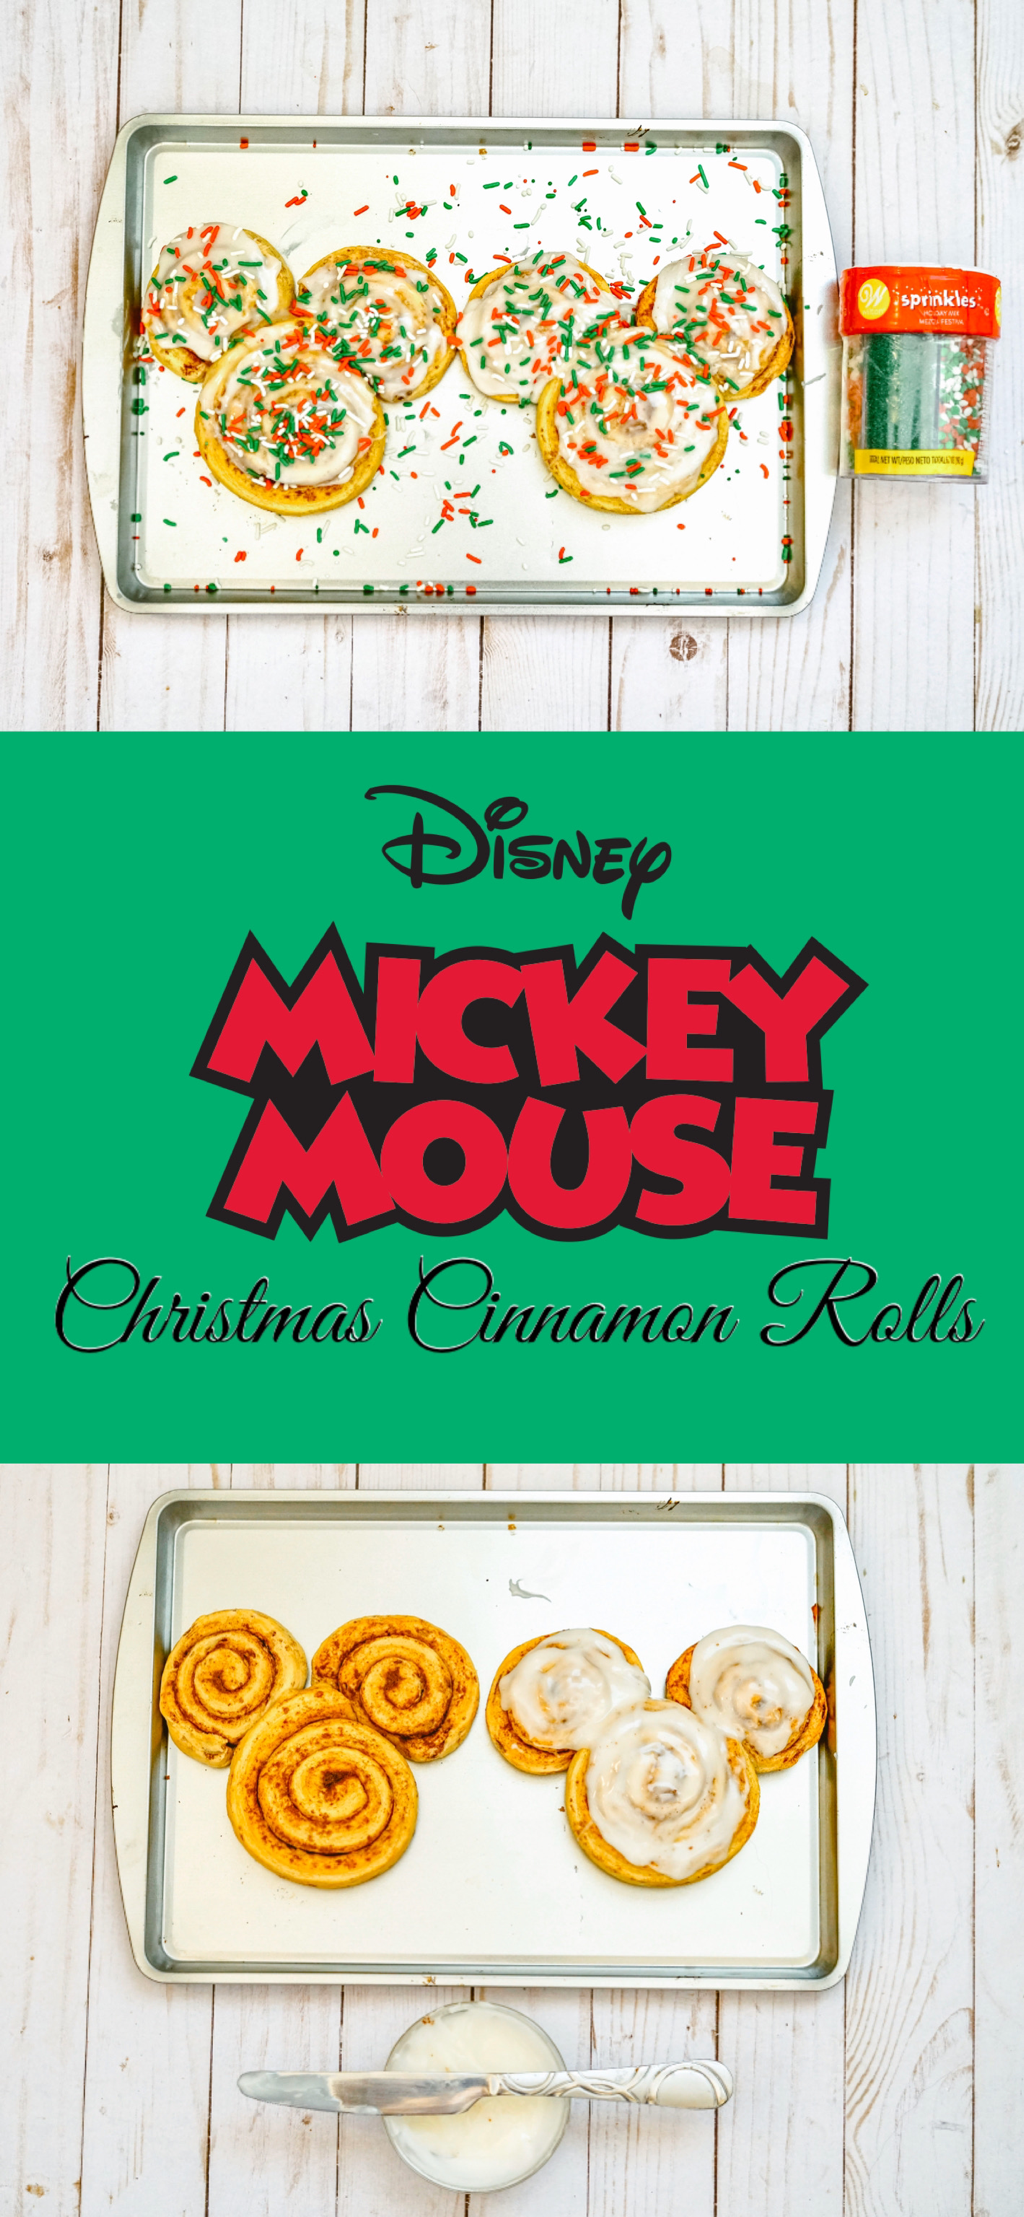 Mickey Mouse Christmas Cinnamon Rolls